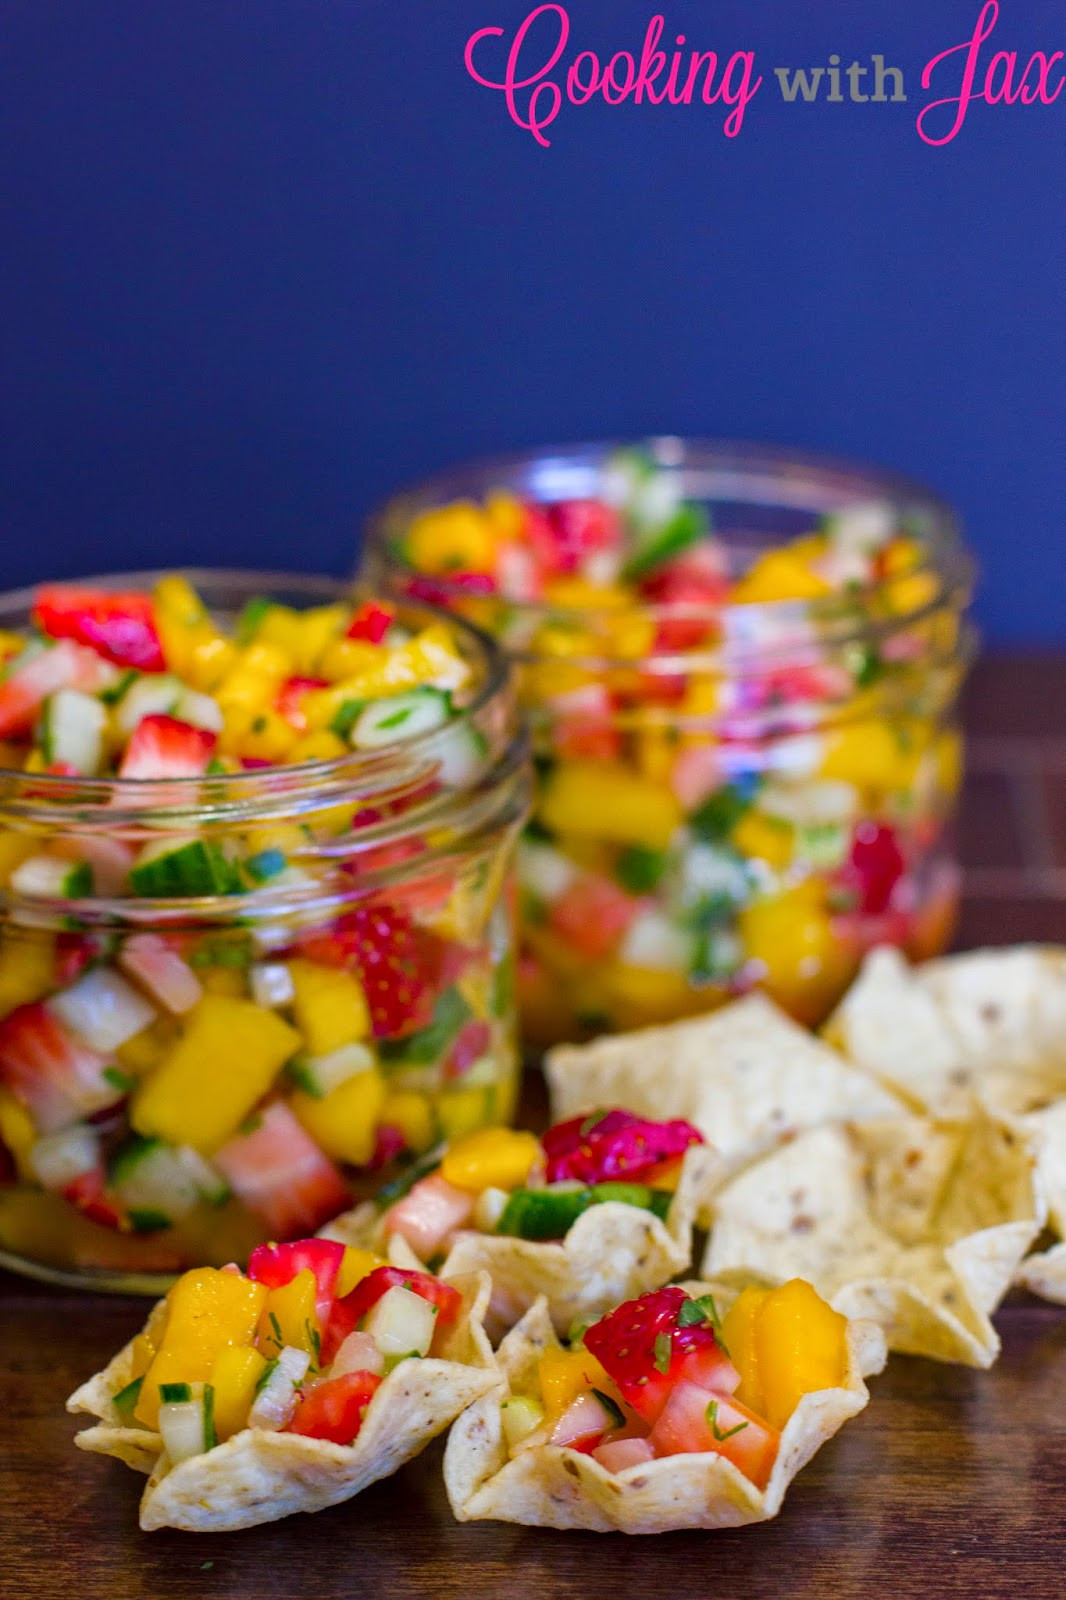 Summer Picnic Side Dishes  30 Picnic Side Dishes Julie s Eats & Treats